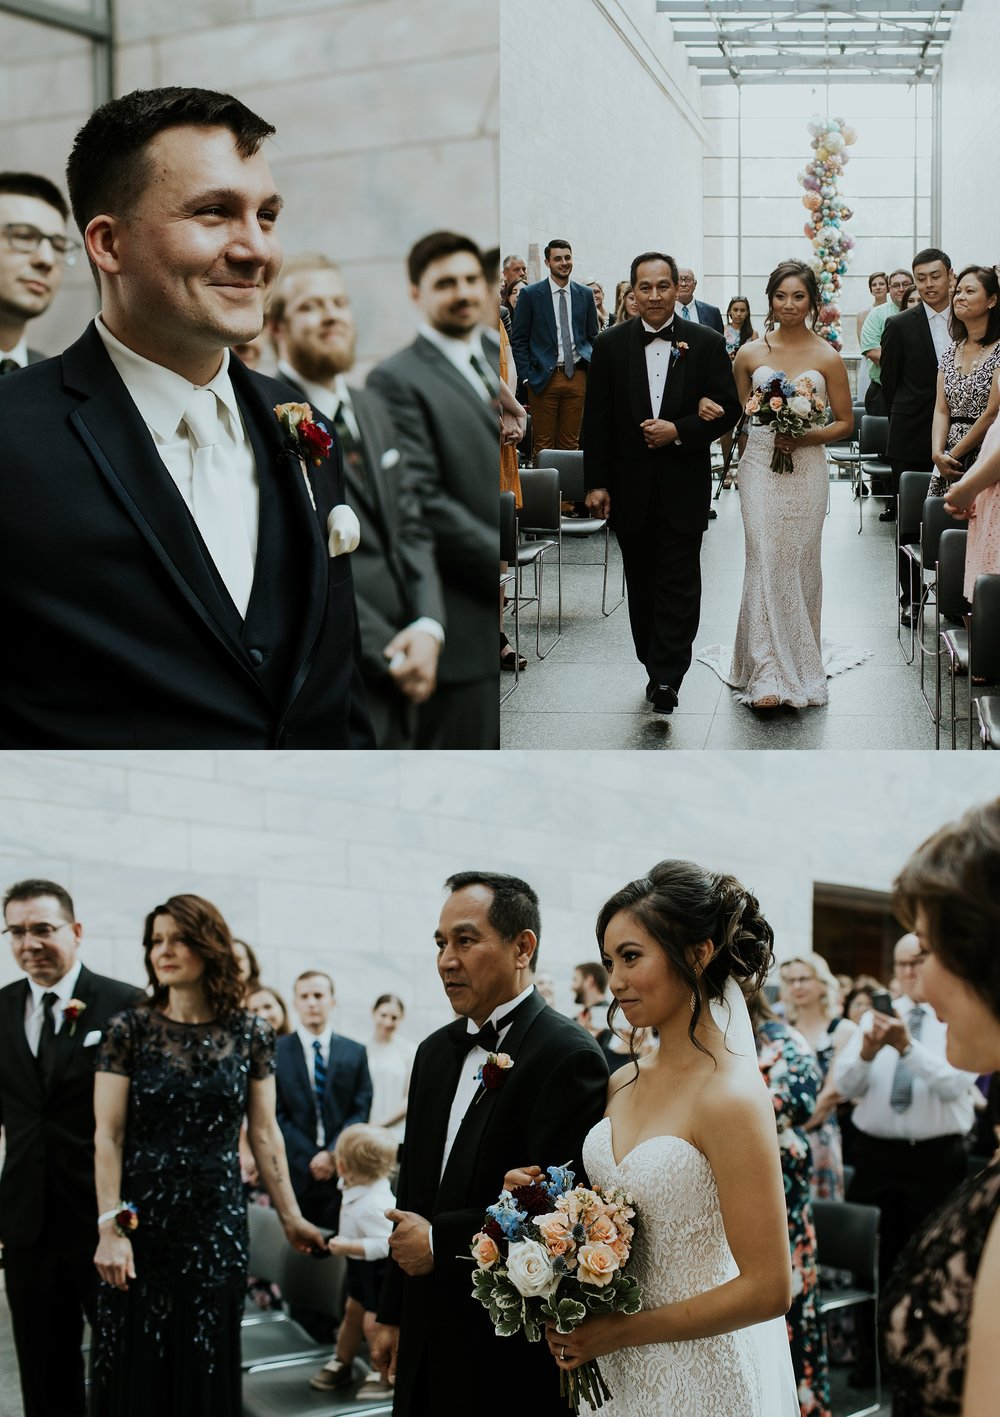 Whimsical Joslyn Art Museum Wedding by Trin Jensen - Omaha Nebraska Wedding Photographer_0014.jpg